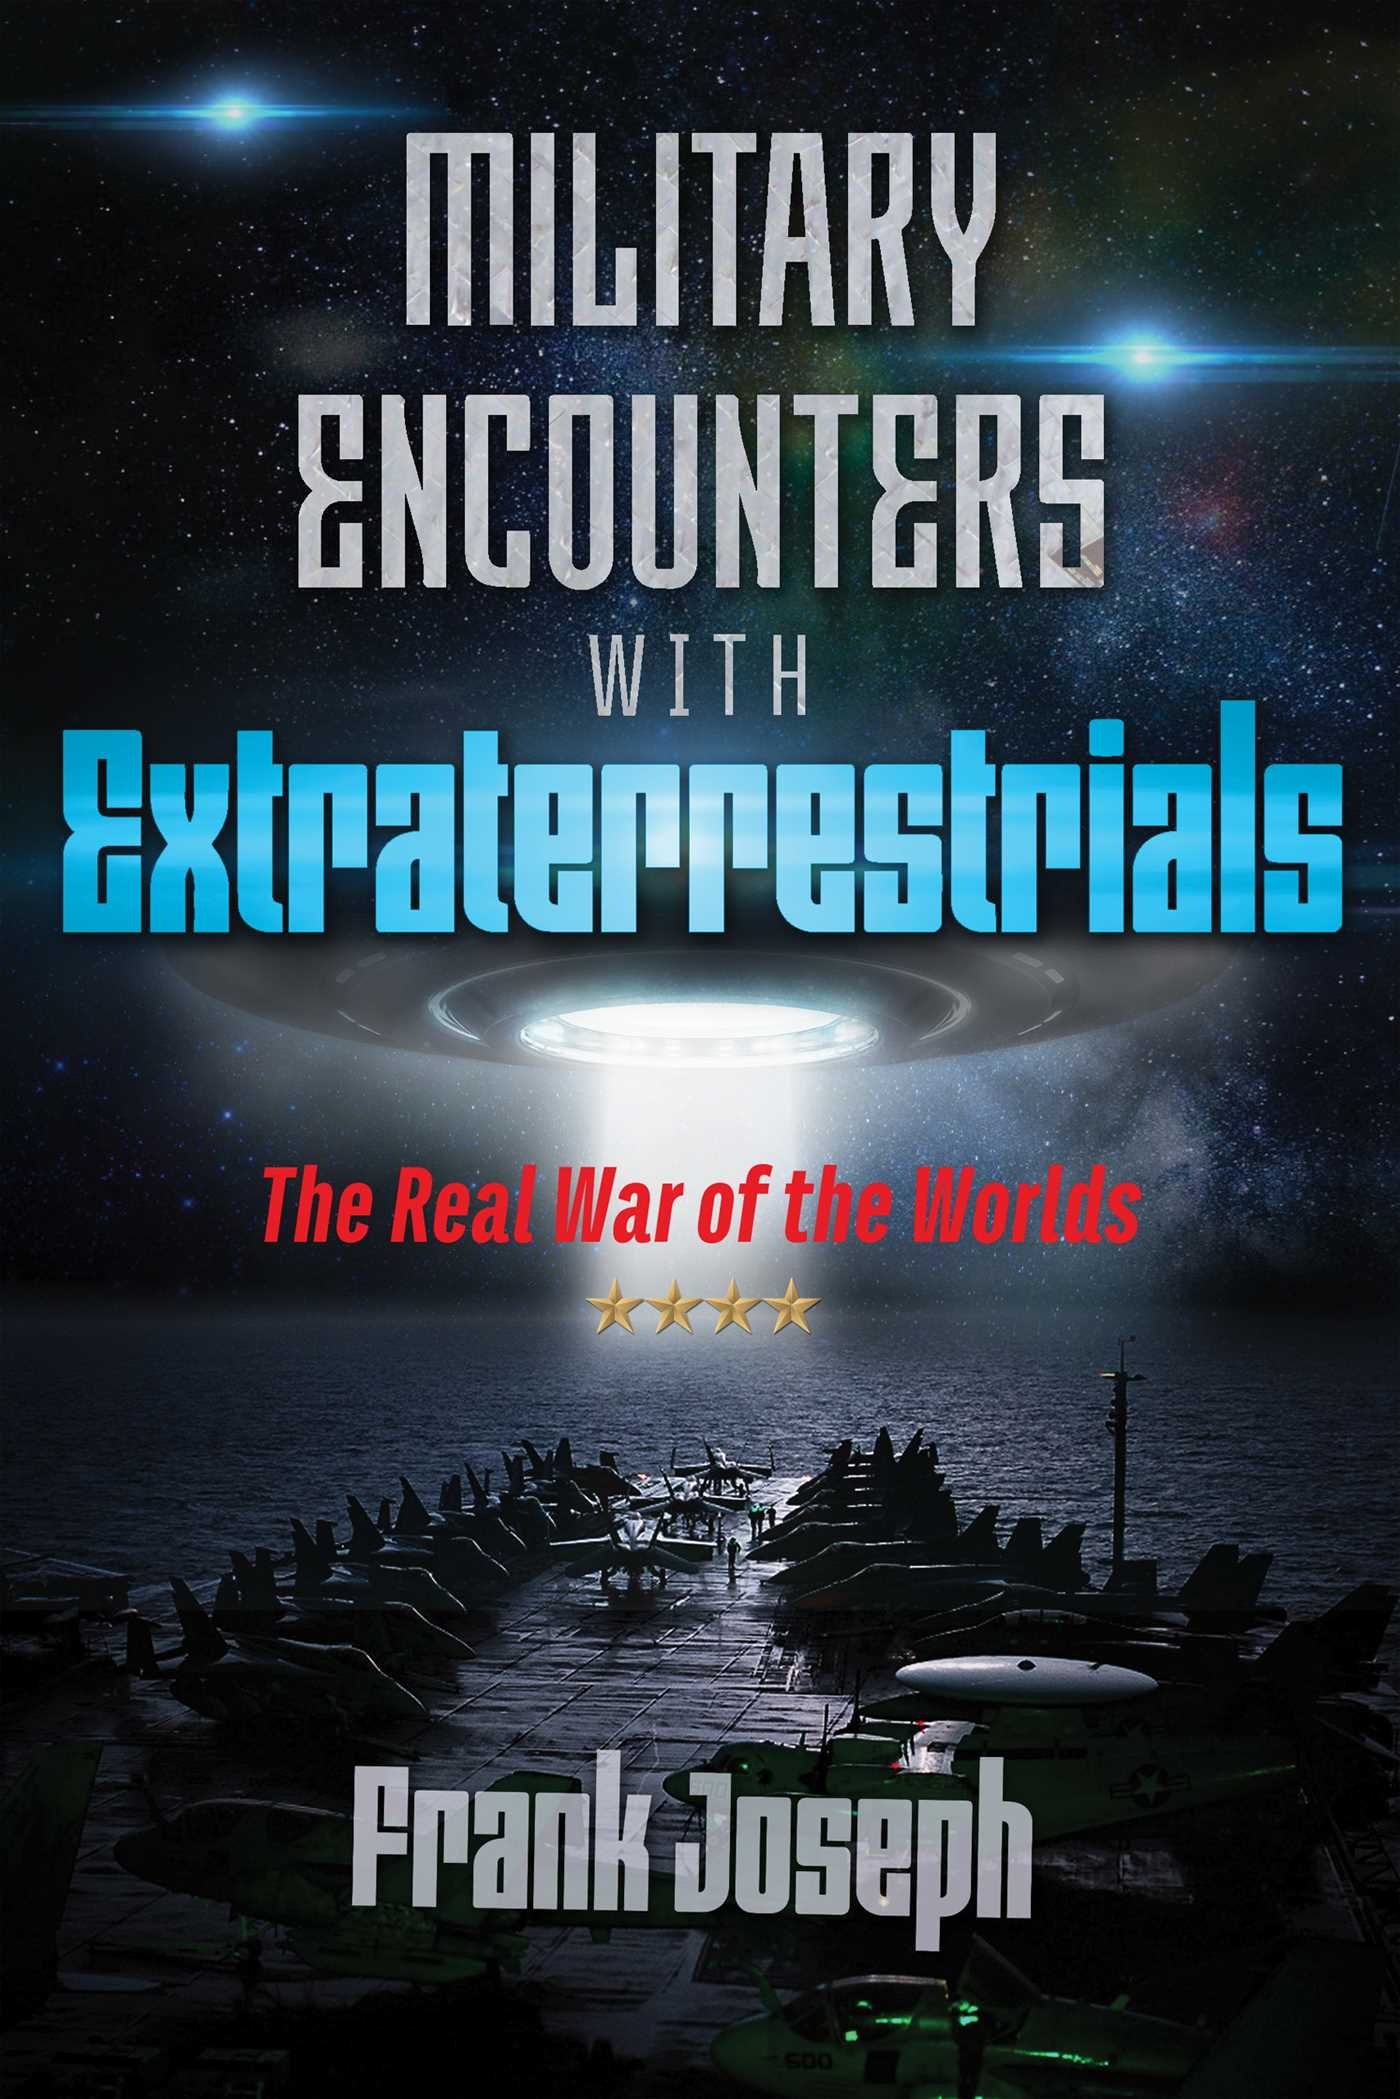 Military encounters with extraterrestrials 9781591433255 hr